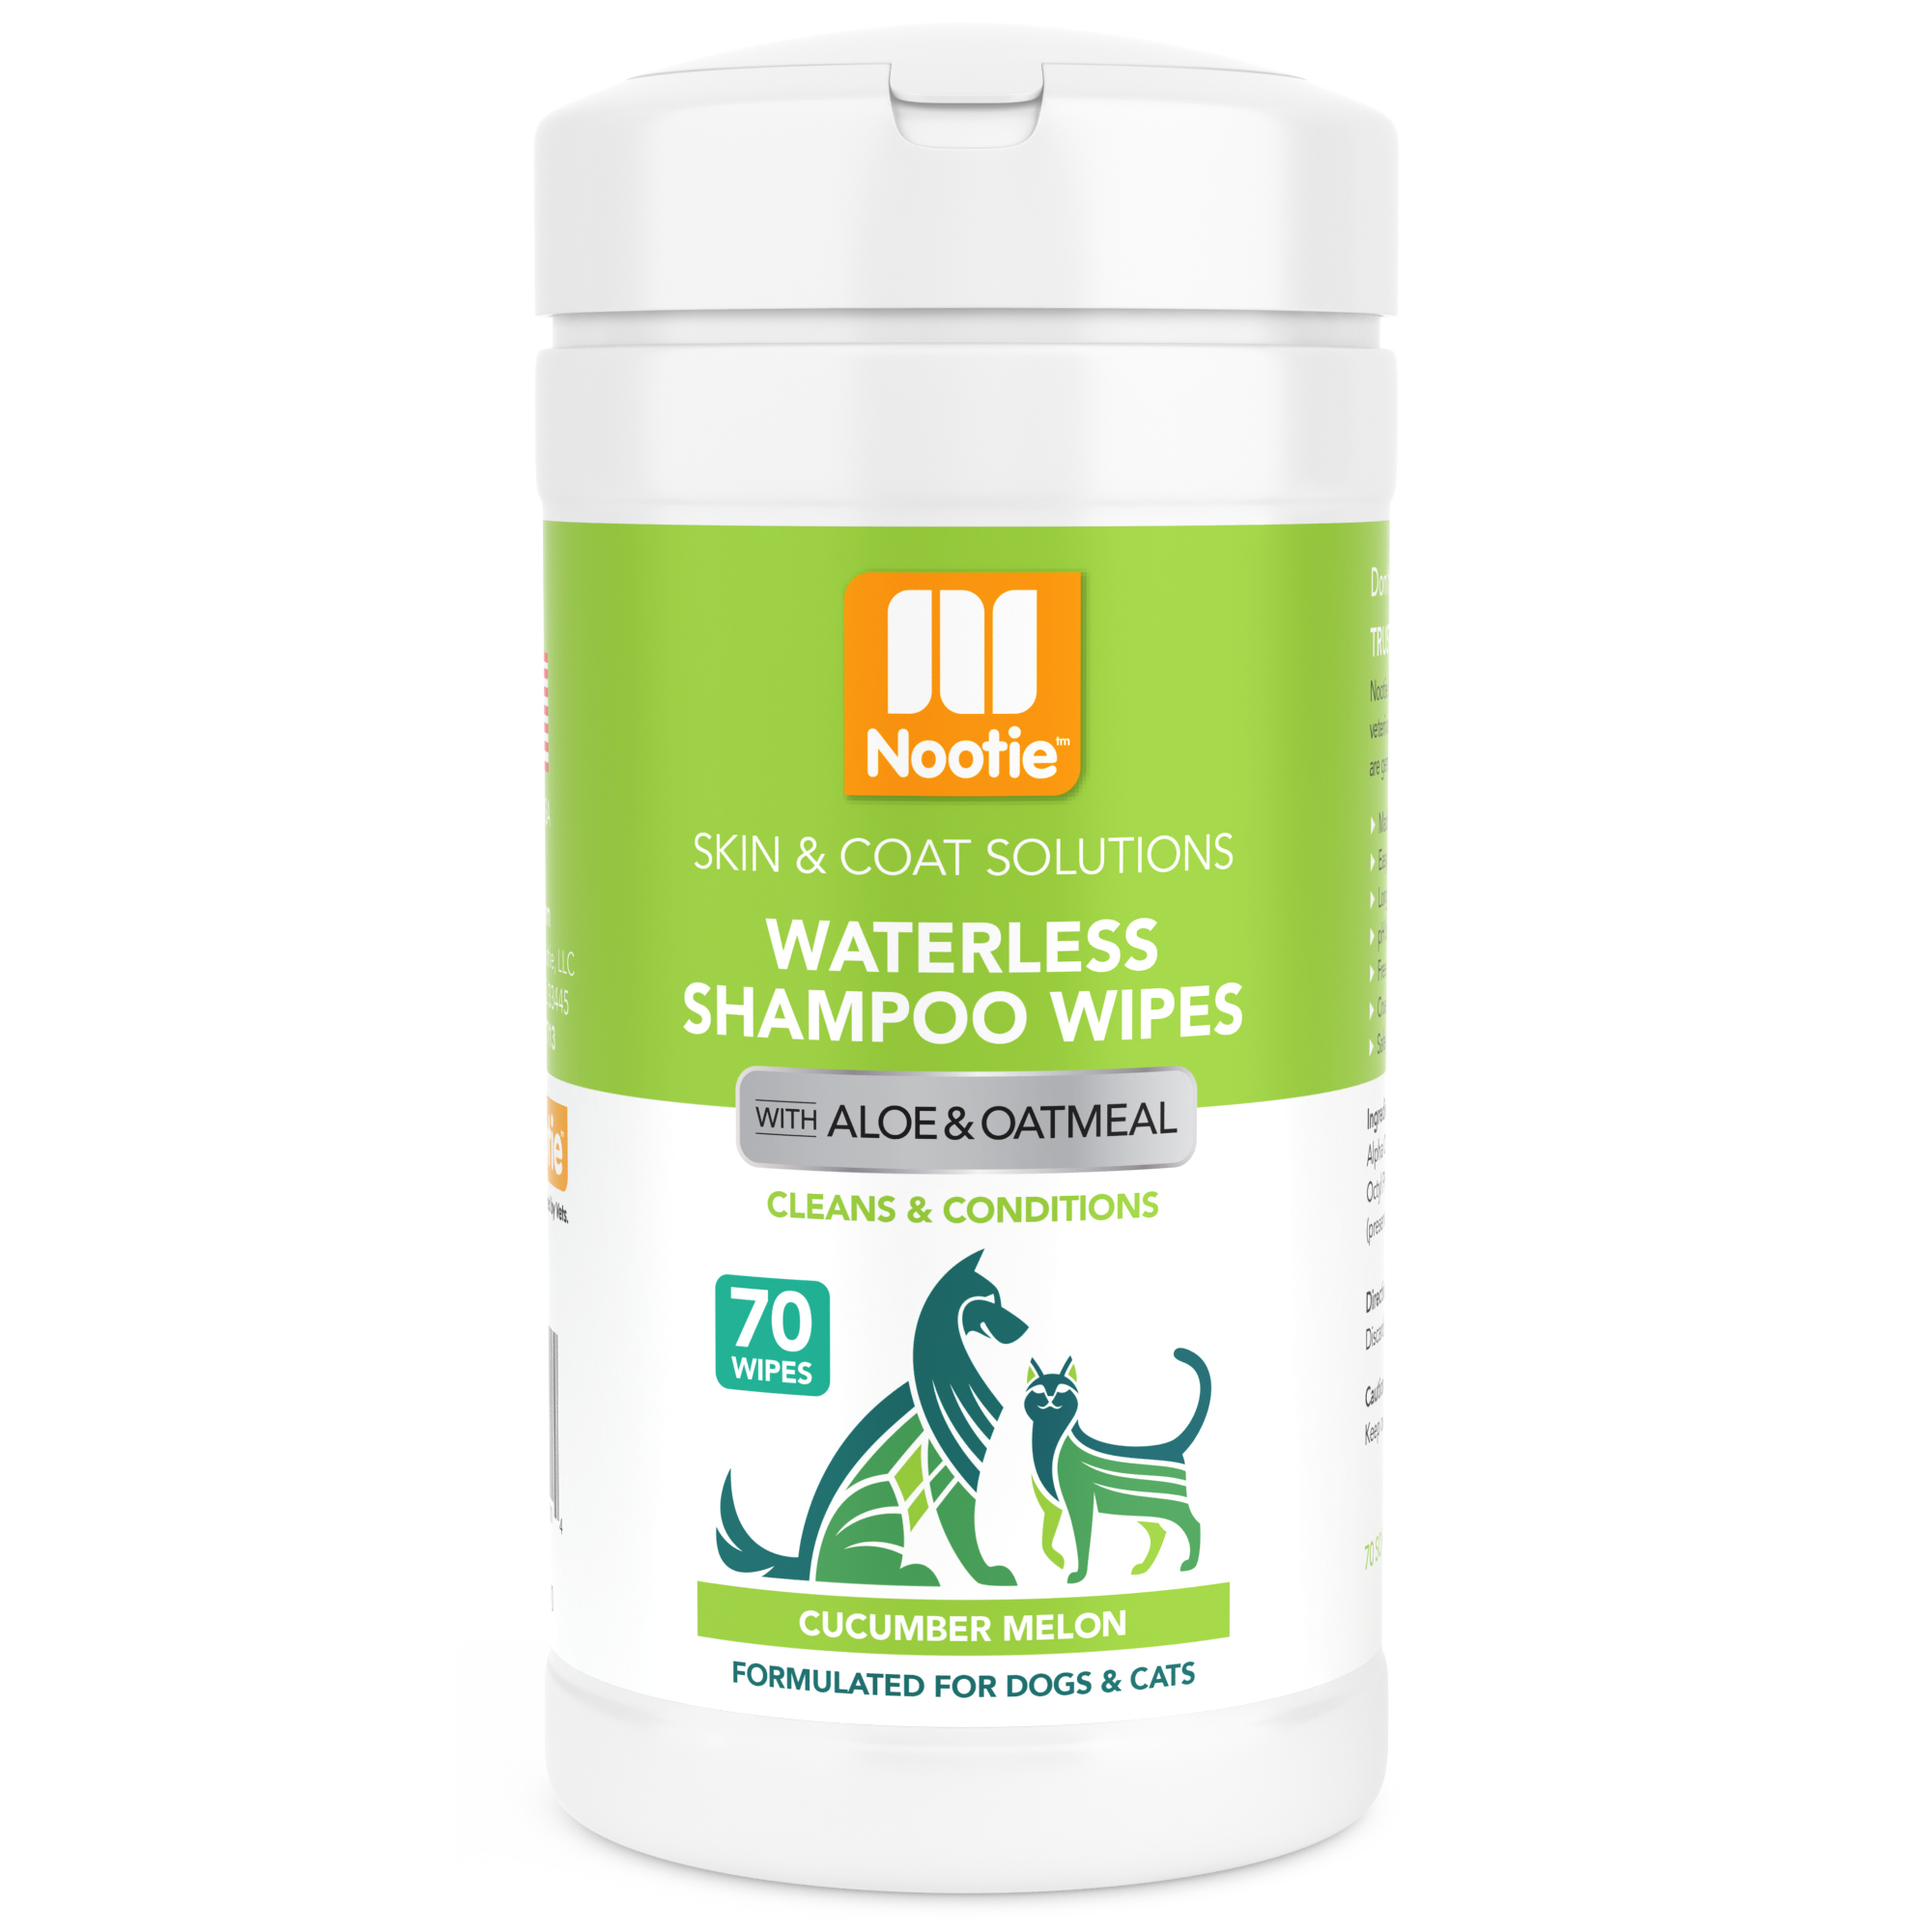 Nootie Cucumber Melon Dog & Cat Waterless Shampoo Wipes, 70 count